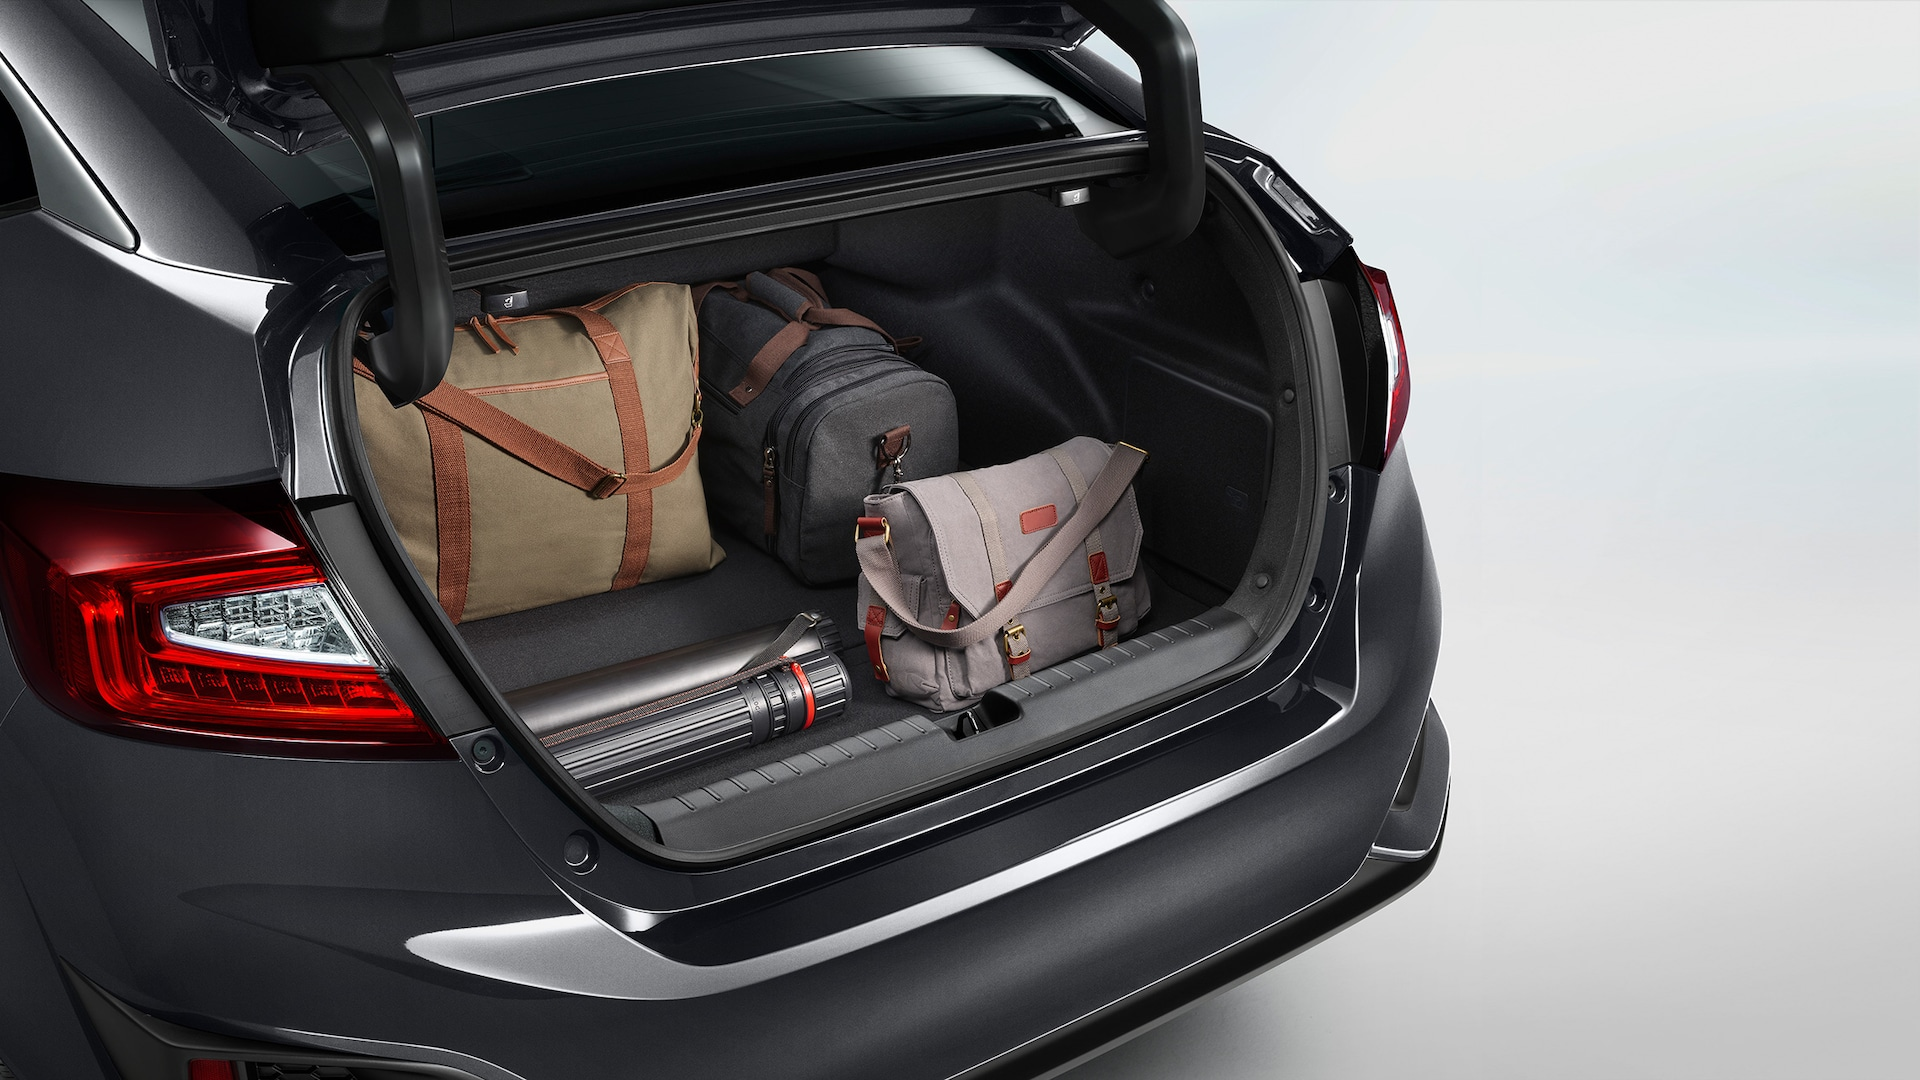 Detail of cargo loaded in open trunk of 2021 Clarity Plug-In Hybrid.